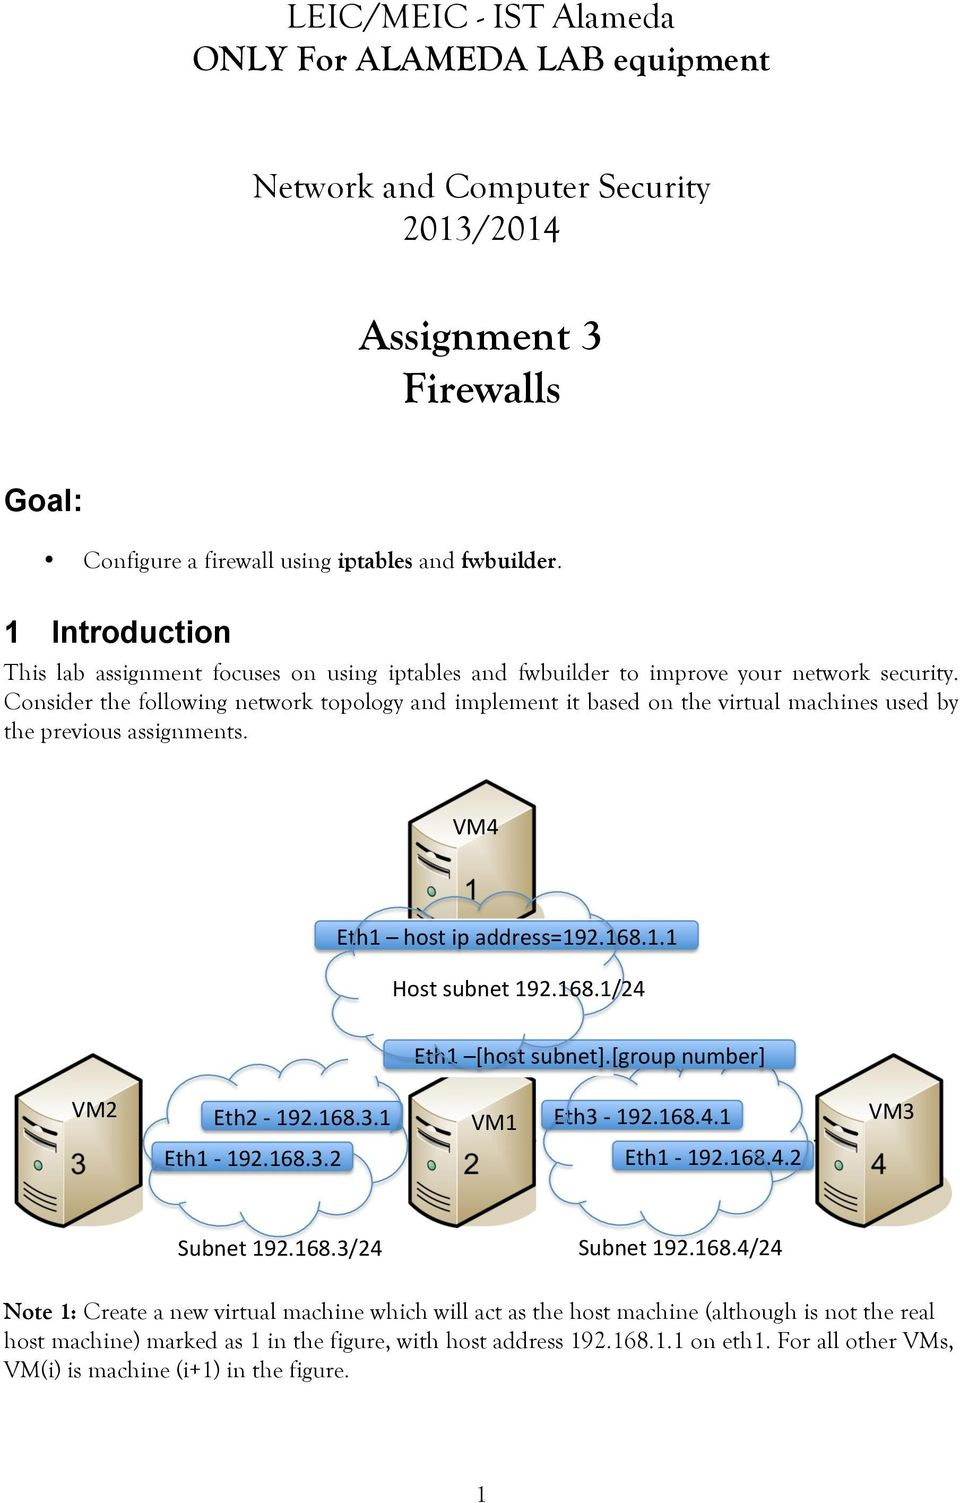 Consider the following network topology and implement it based on the virtual machines used by the previous assignments.